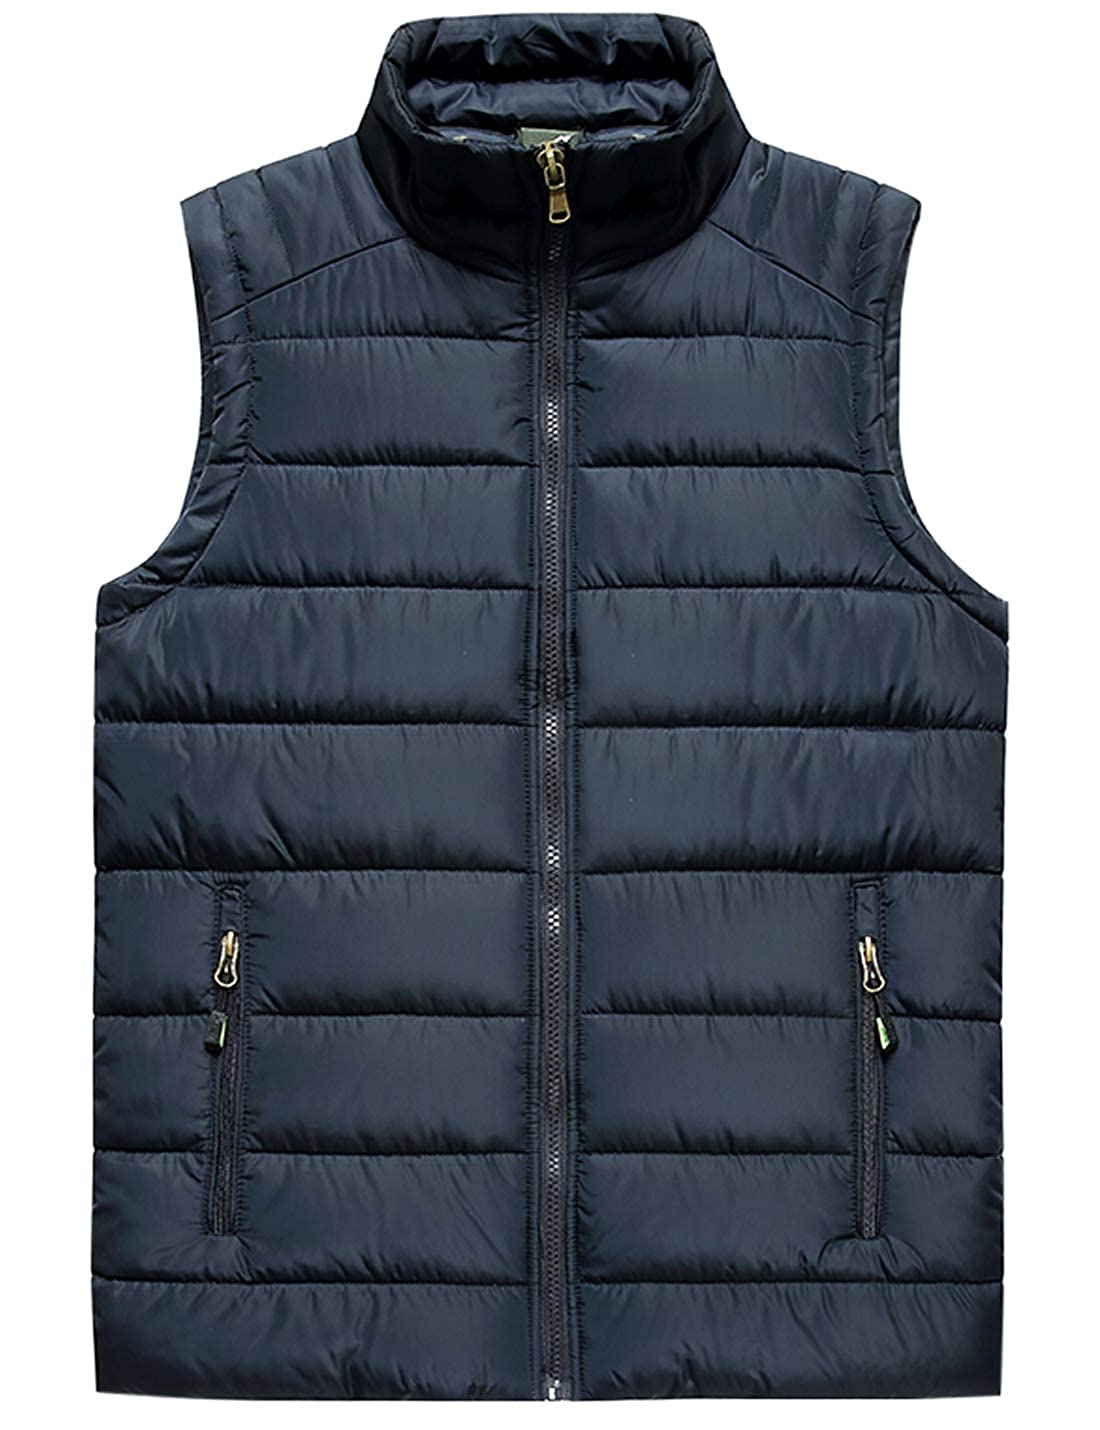 Jenkoon Mens Classic Quilted Down Outdoor Puffer Vest Casual Vest Jacket Coat